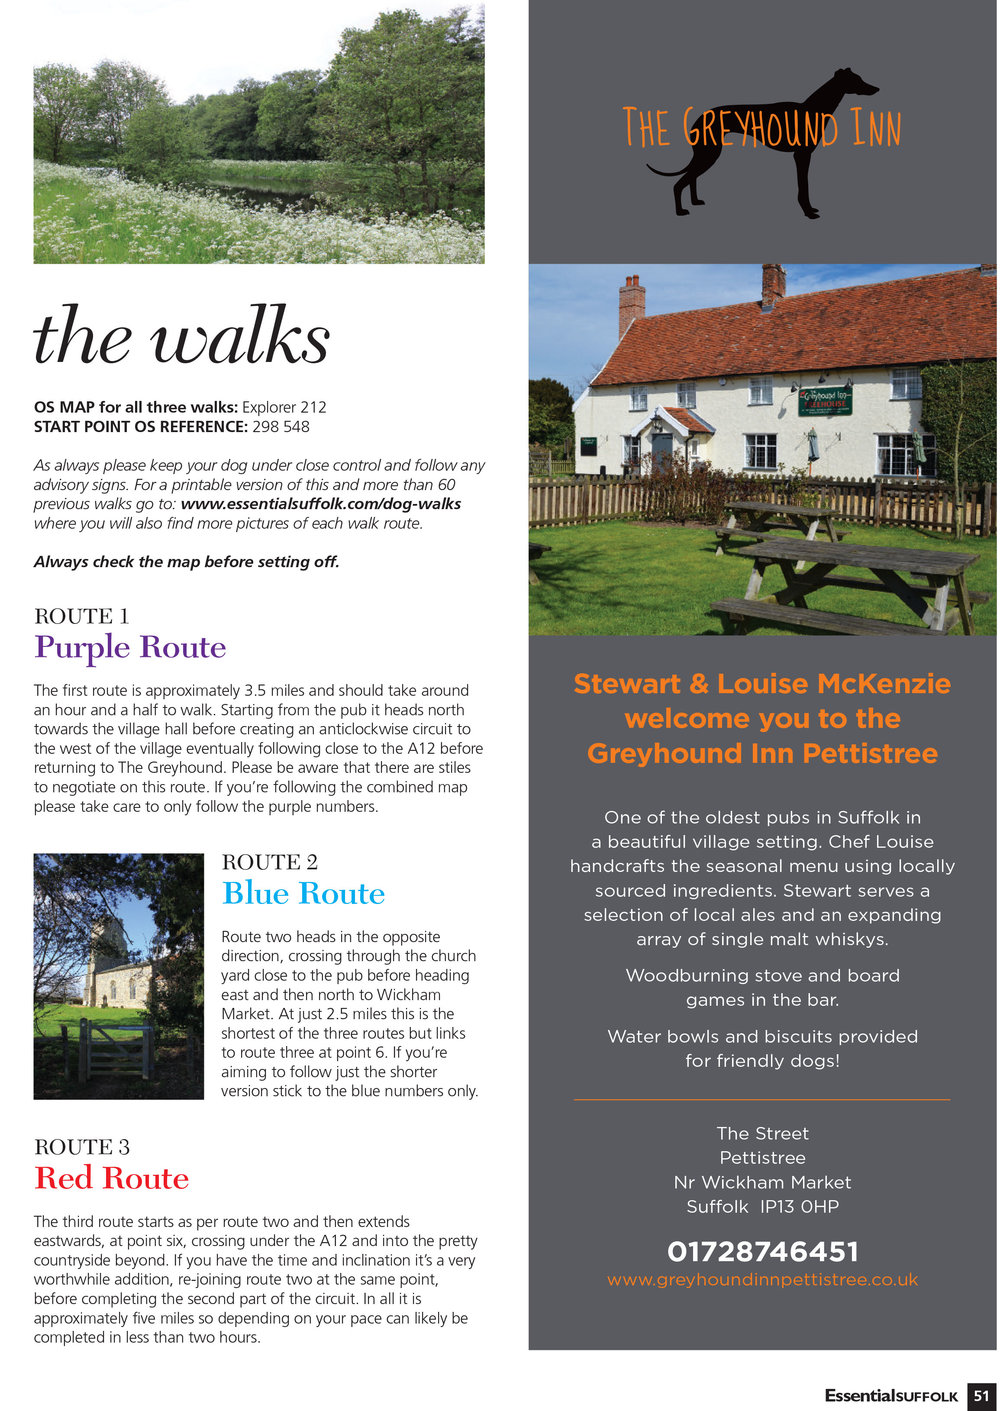 Essential Suffolk Pettistree dog walks page 2